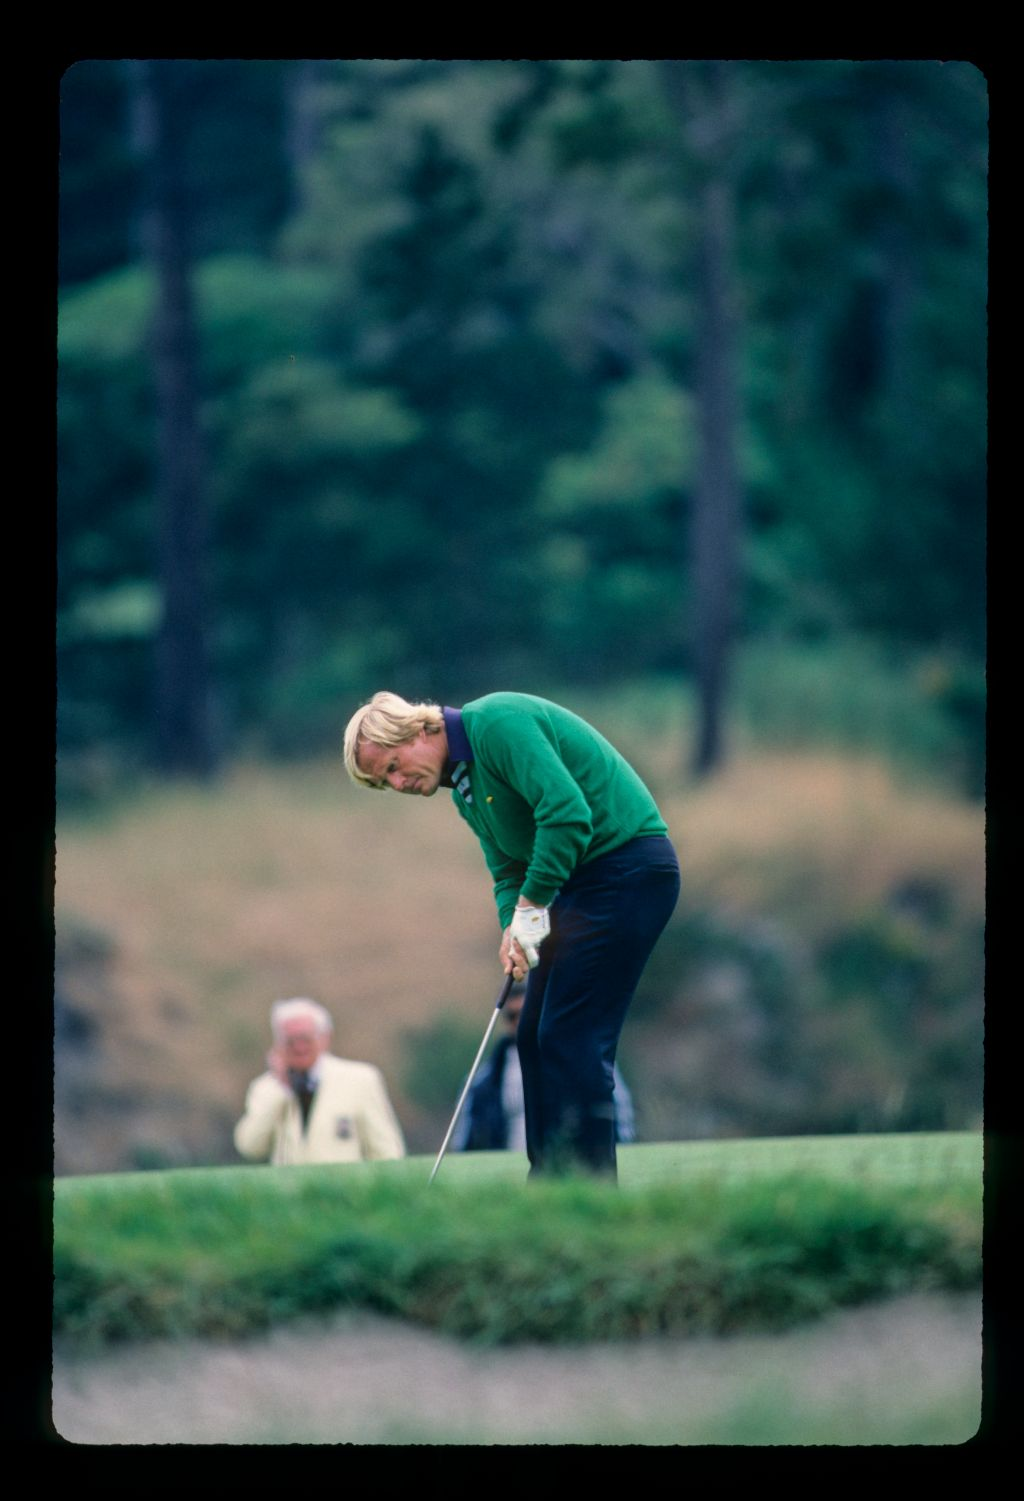 Jack Nicklaus putting during the 1982 US Open